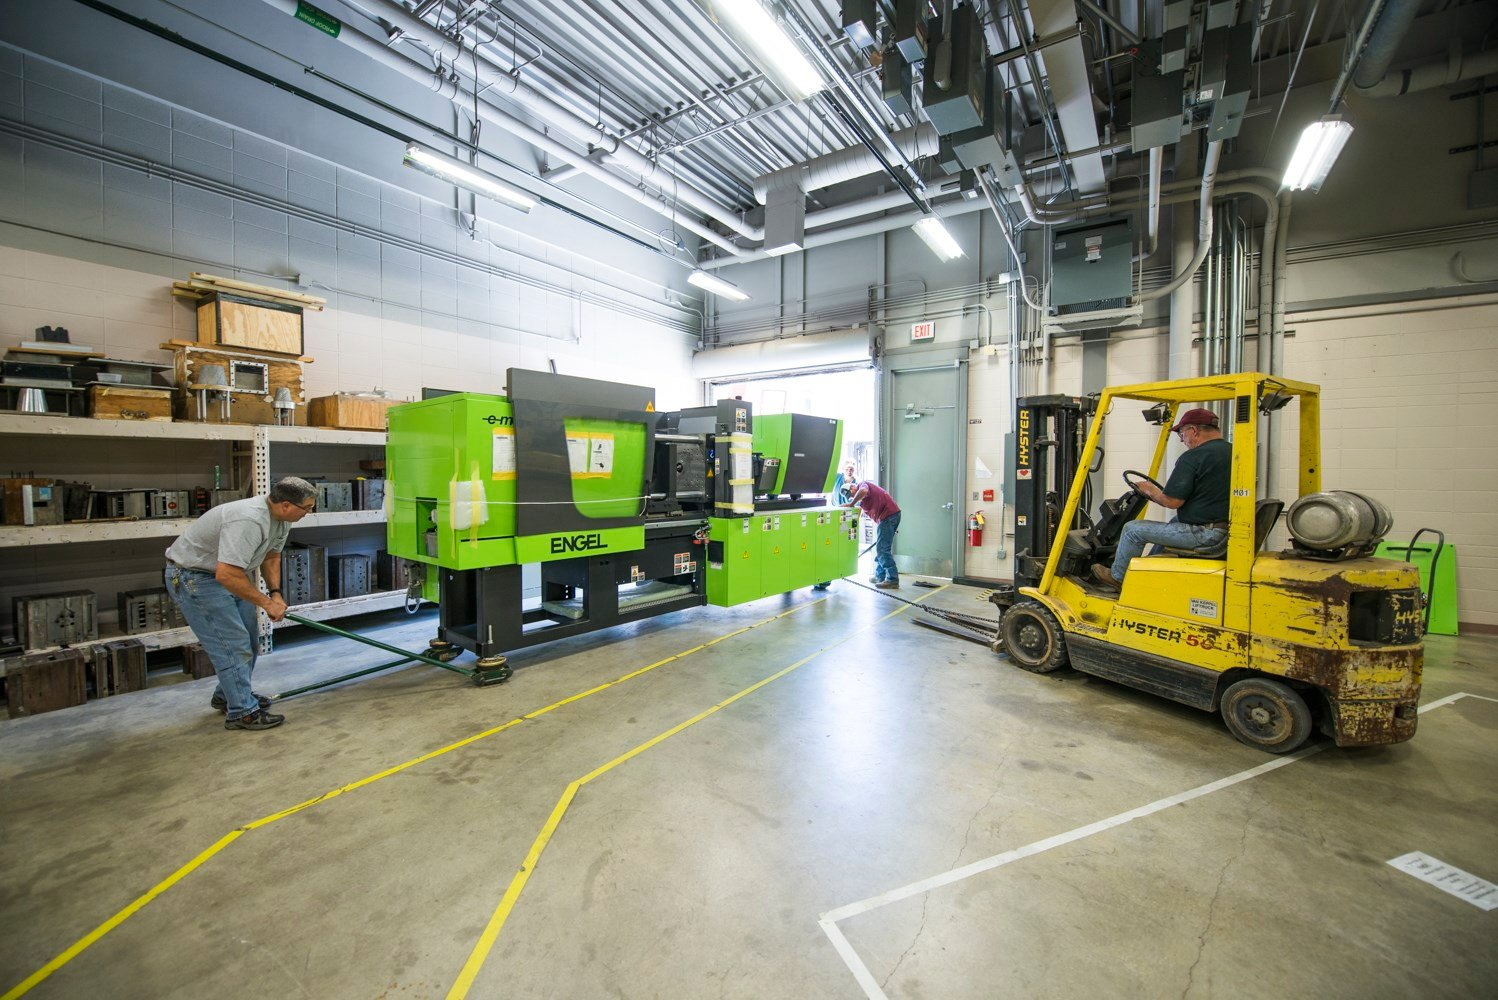 Workers at Pittsburg State take possession of an injection molding machine from Engel. Pittsburg State Plastics Engineering Technology students will use the machine and its next generation controls in their coursework.